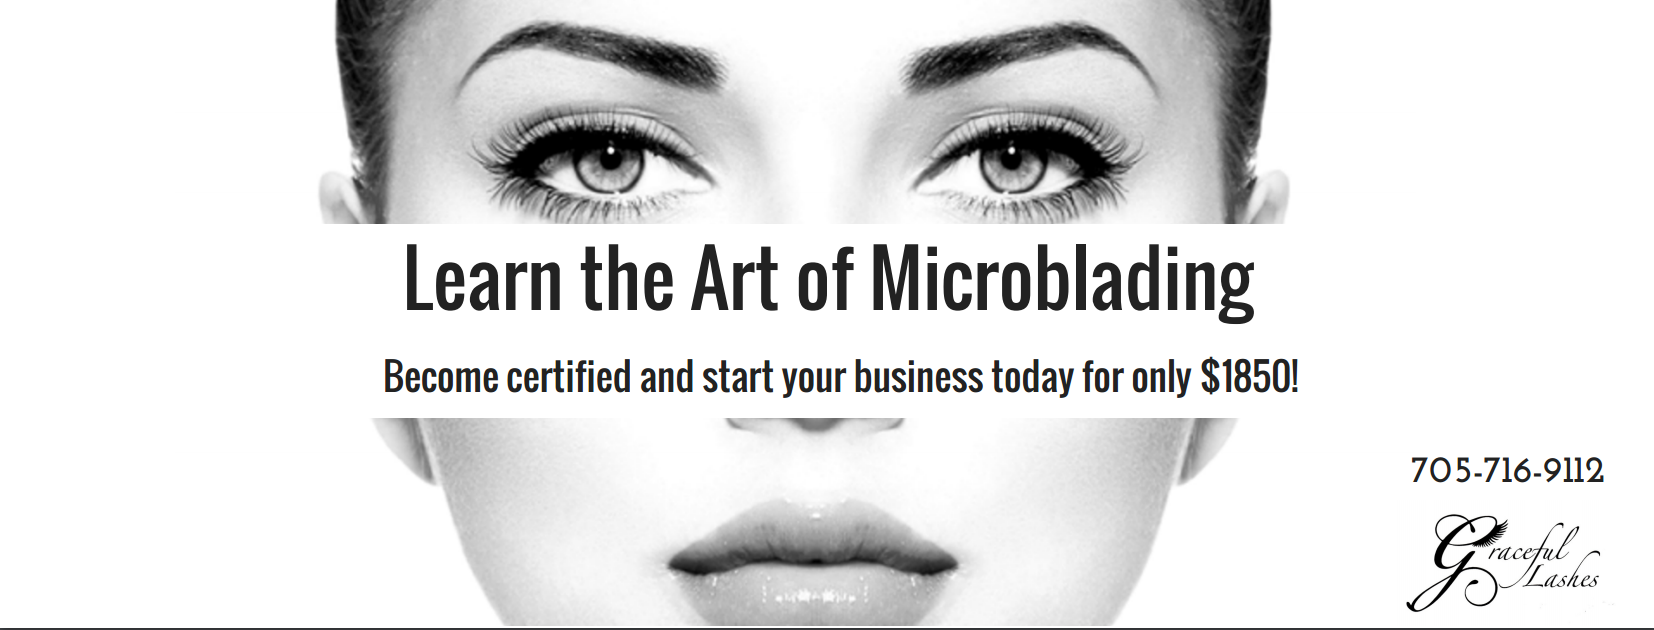 Graceful Lashes training academy offers Microblading/Eyebrow